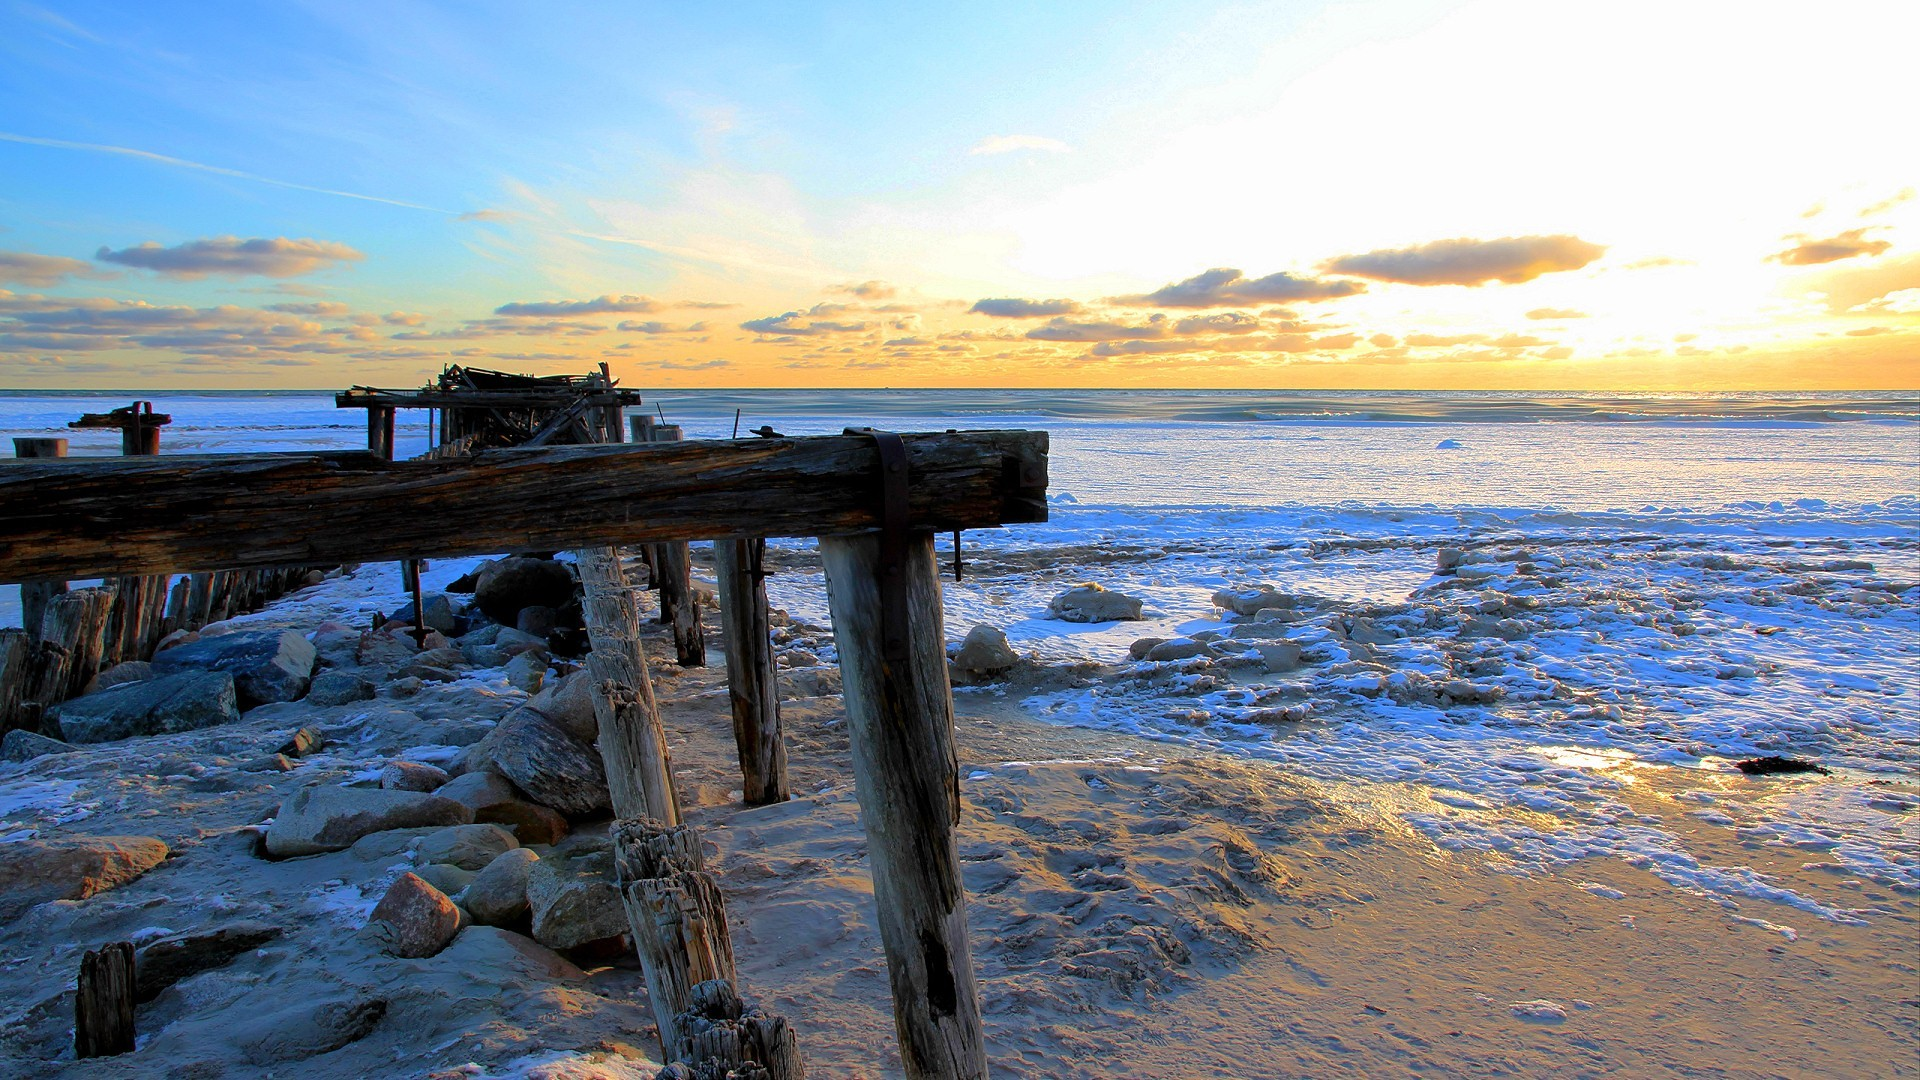 Wrecked pier in winter